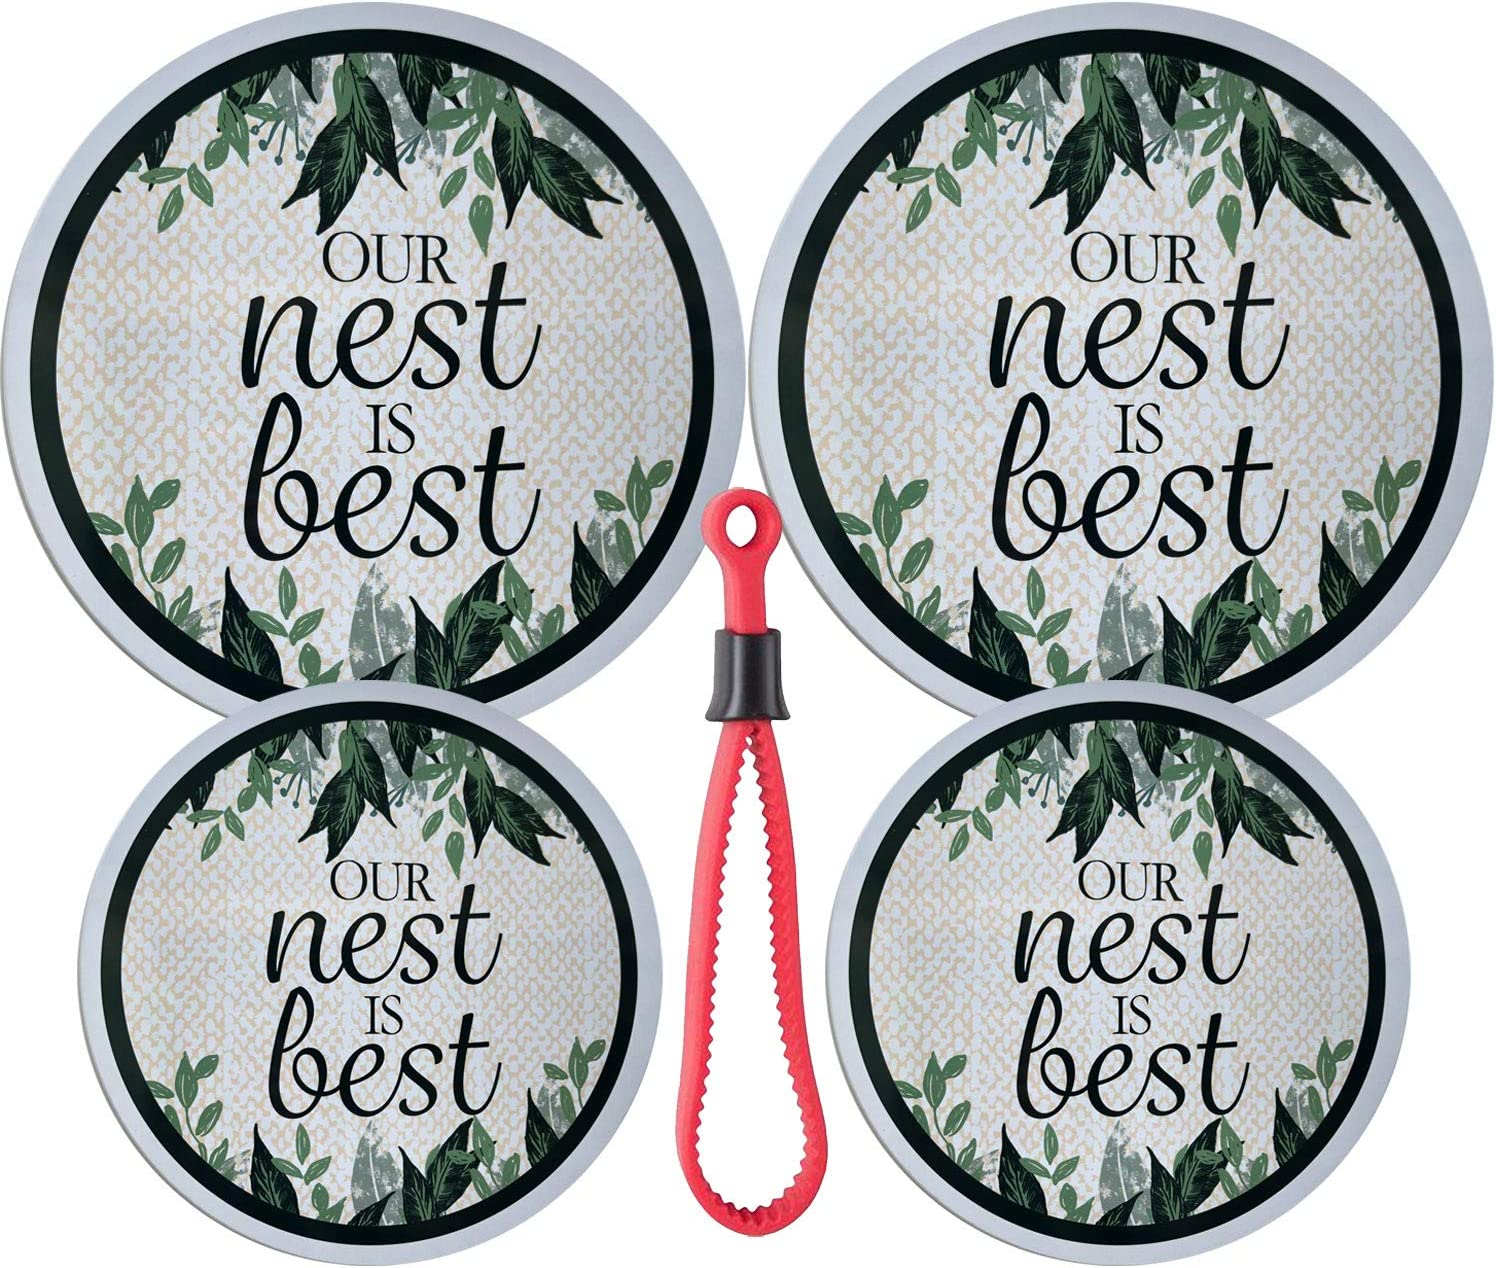 Our Nest Is Best Set of 4 Electric Stove Burner Covers (Nest)